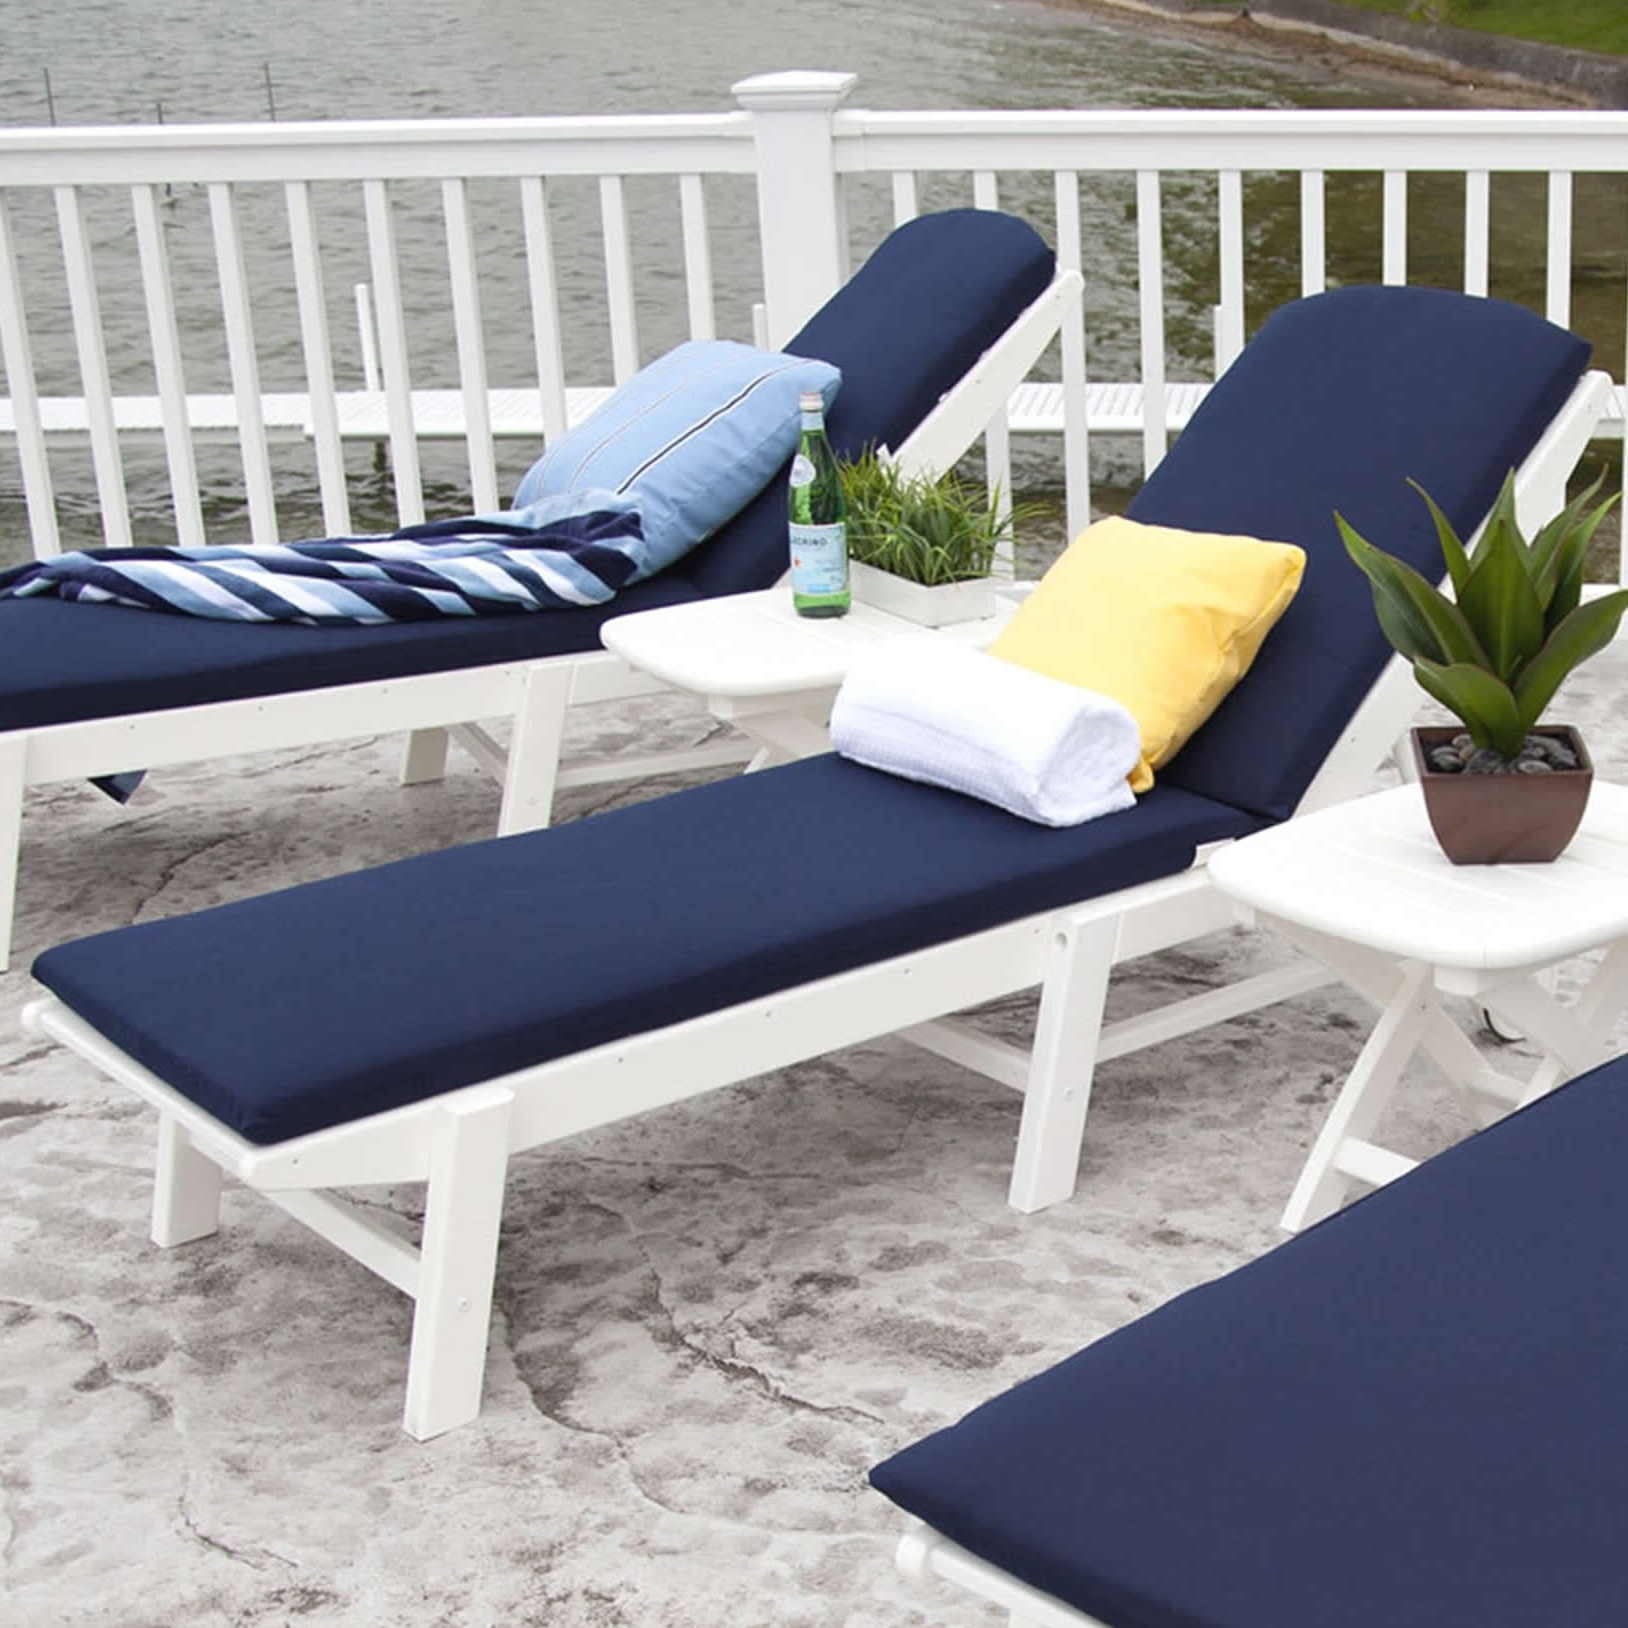 Newest Polywood Nautical Chaise Lounge Cushions Intended For Chaise Lounge Chairs With Cushions (View 5 of 15)